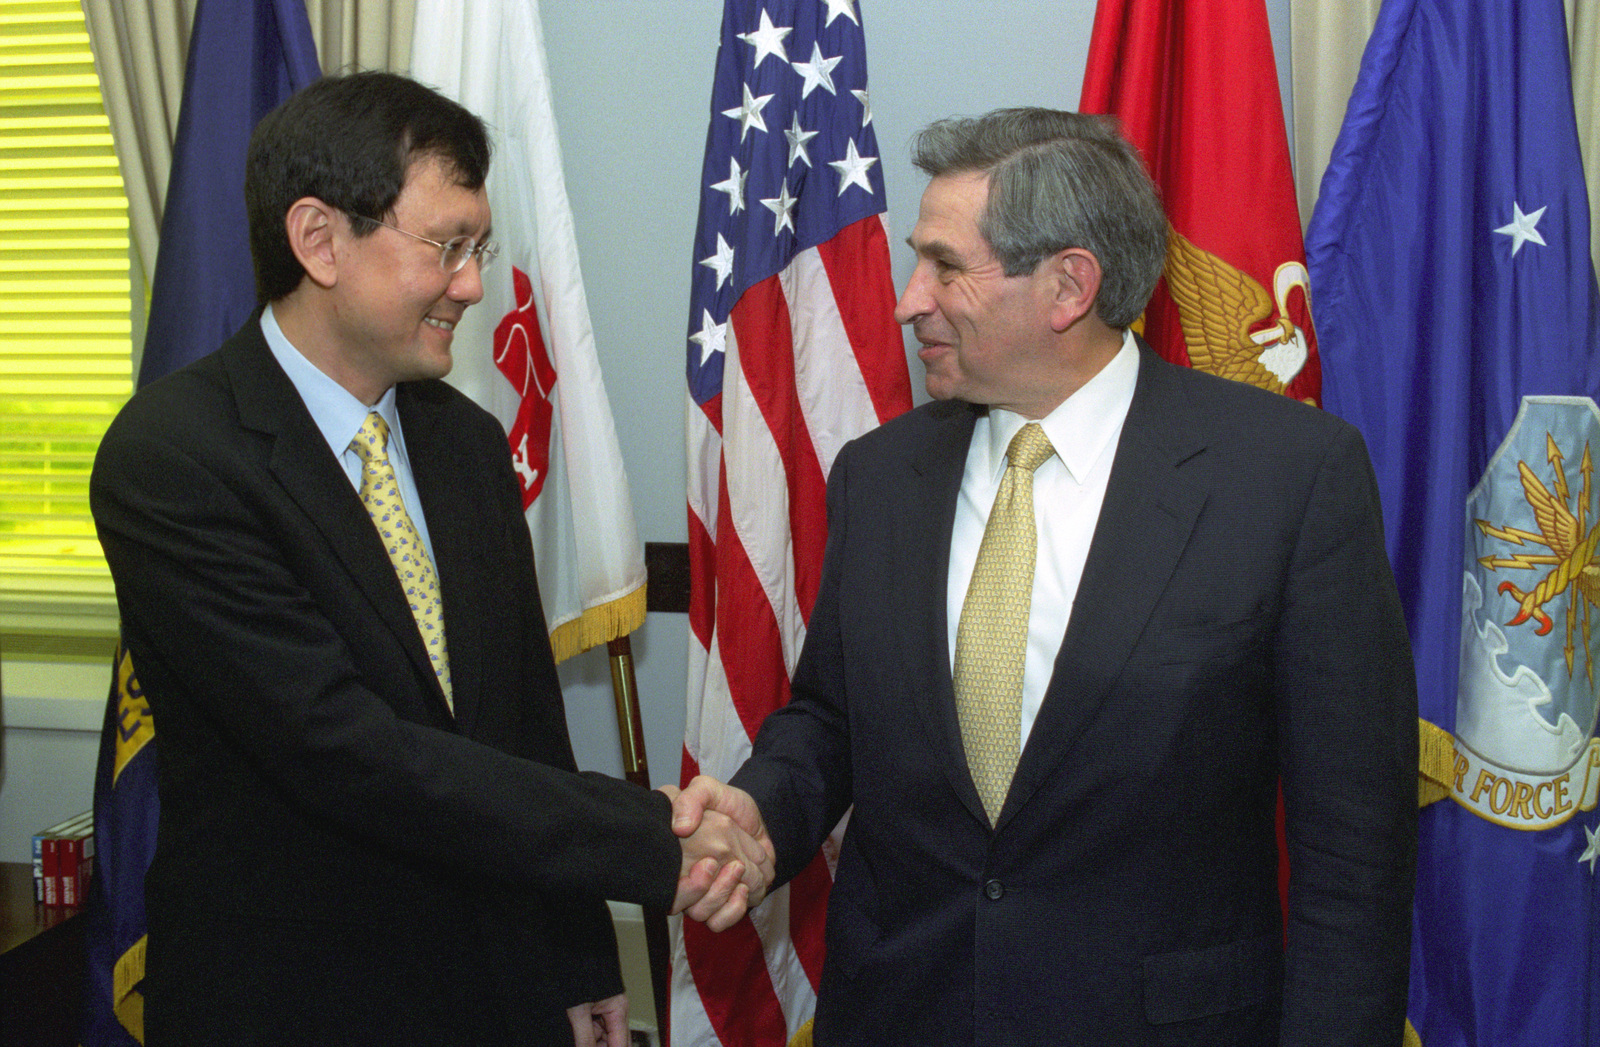 Raymond Lim (left), Minister of State for Foreign Affairs of Singapore, and the Deputy Secretary of Defense Paul Wolfowitz (right), shake hands at the Pentagon, Washington, D.C., on Oct. 4, 2002.  OSD Package No. A07D-00658 (DOD PHOTO by Robert D. Ward) (Released)